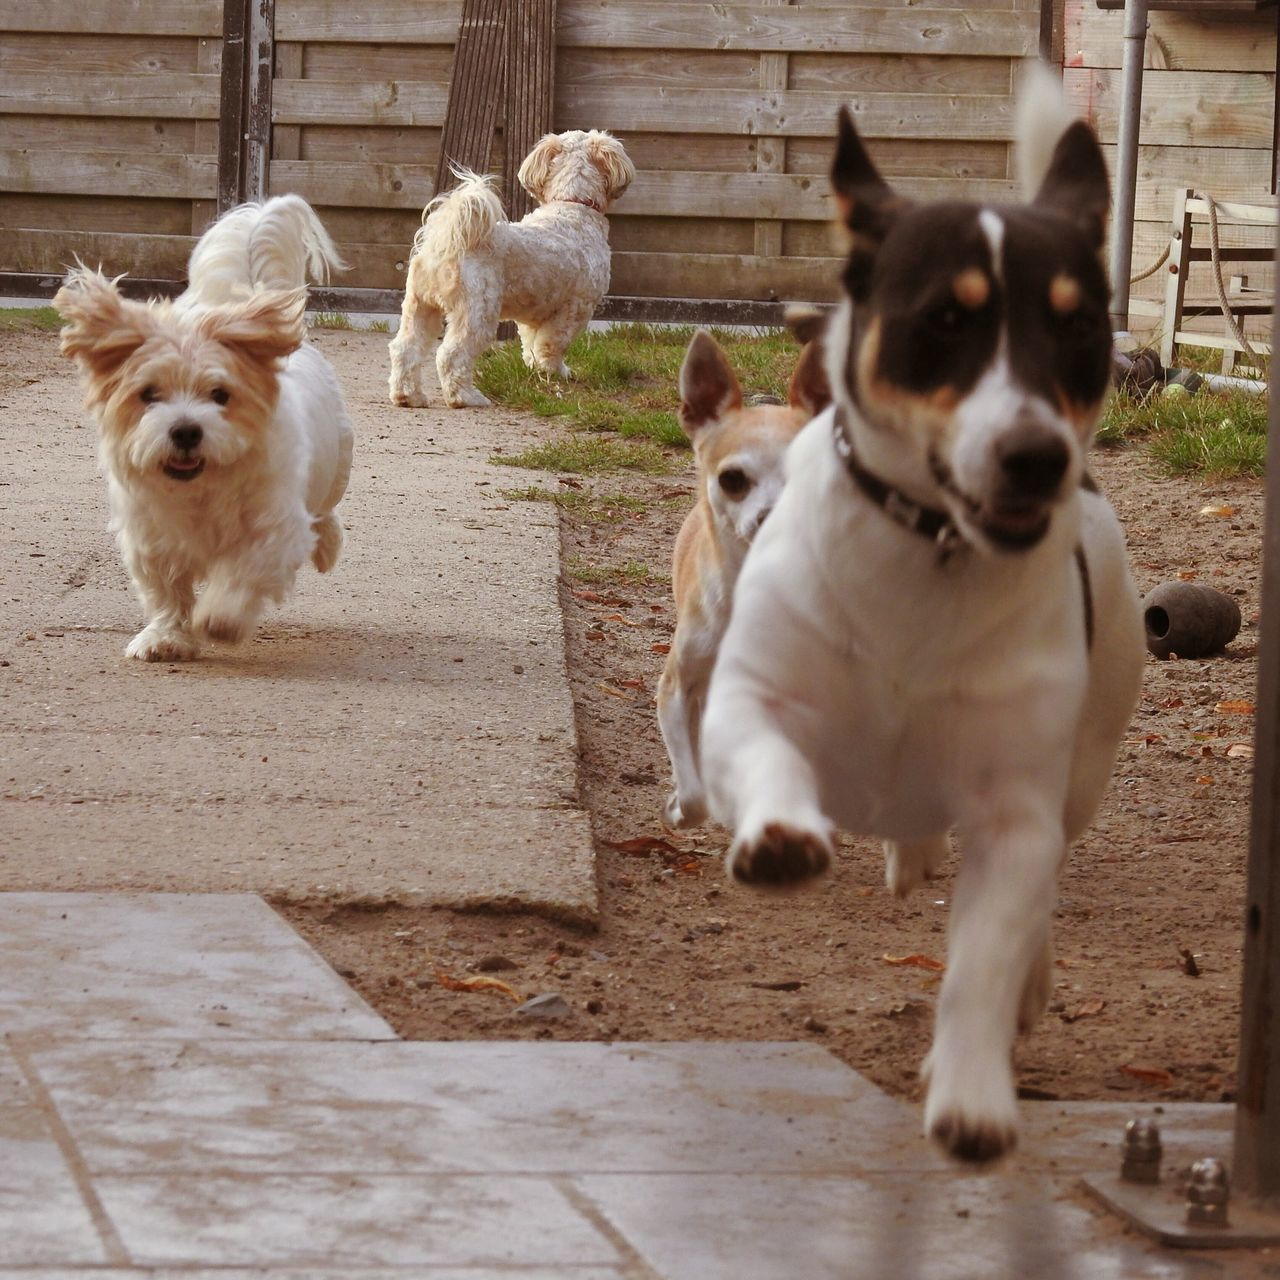 Dog Domestic Animals Pets Animal Themes Mammal Outdoors Day No People Portrait Togetherness Nature Lilymayparker.blogspot.be Lily May Collection Lily May Parker Dogs Dogs Of EyeEm Running running from the woegieman 🐾🐾🐾🐾🐾🐾 Nature